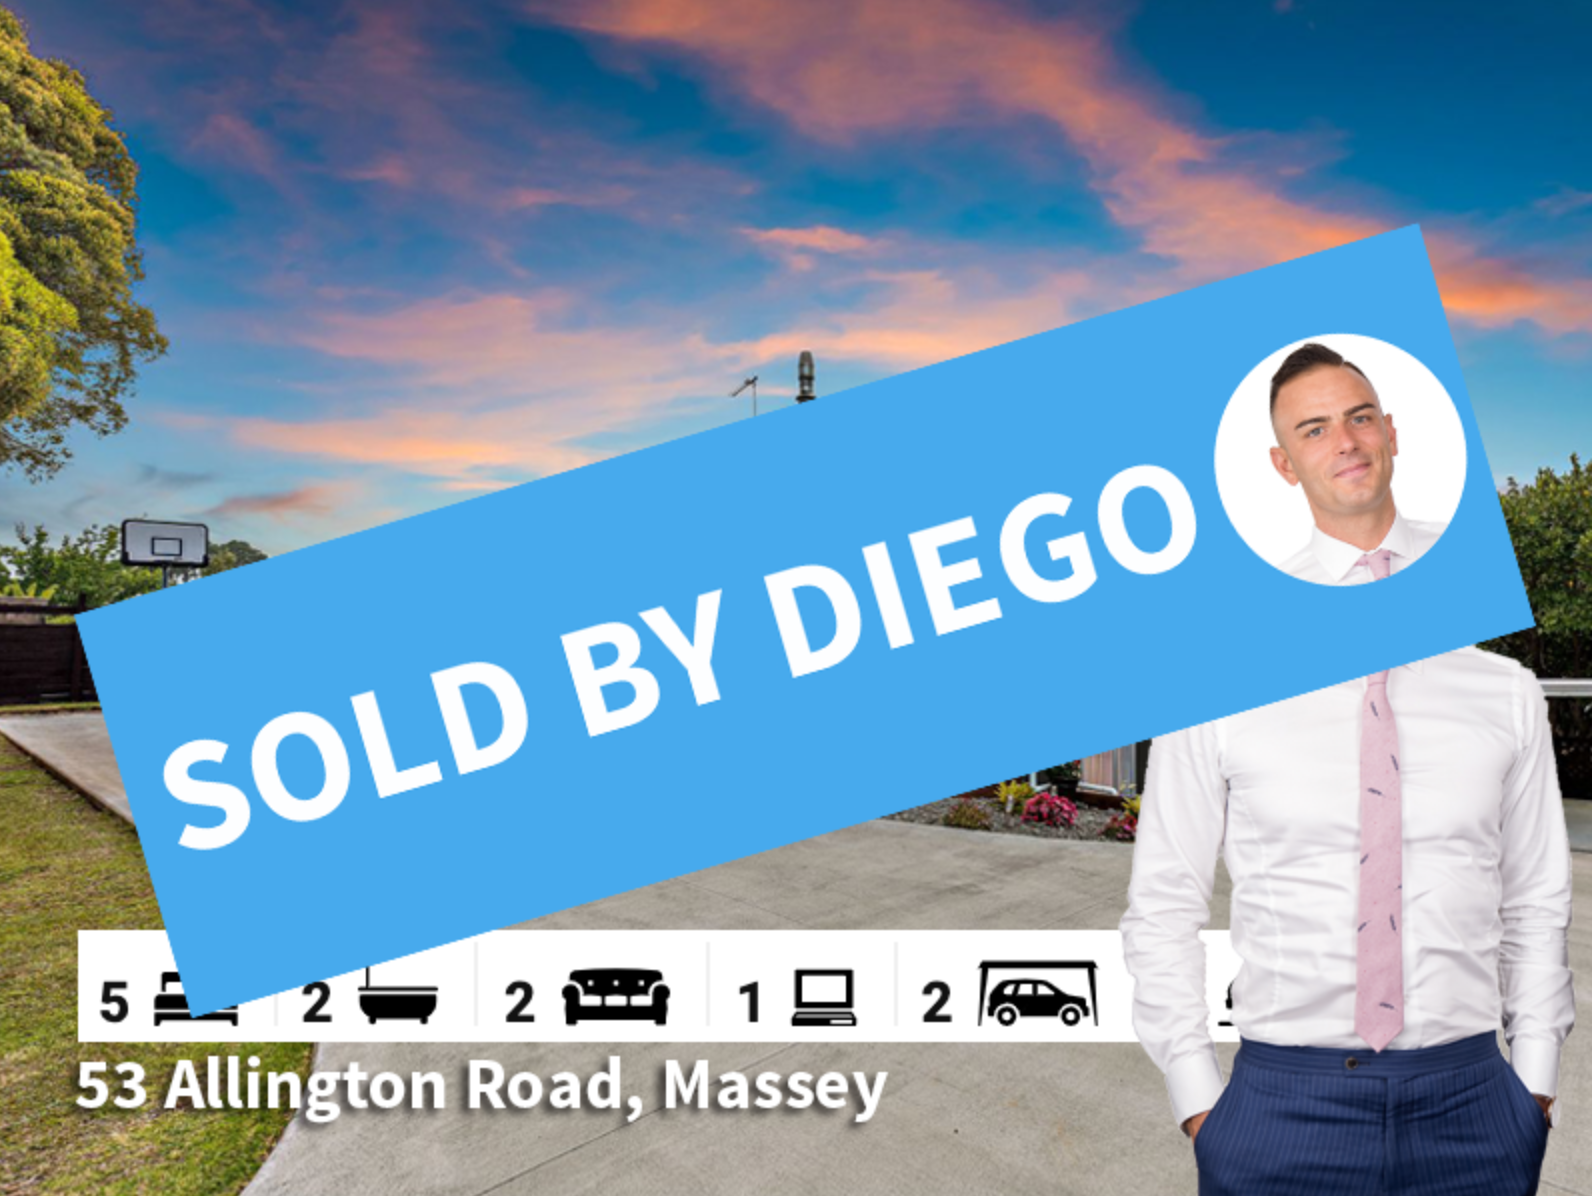 53 Allington Road Massey SOLD by Diego T